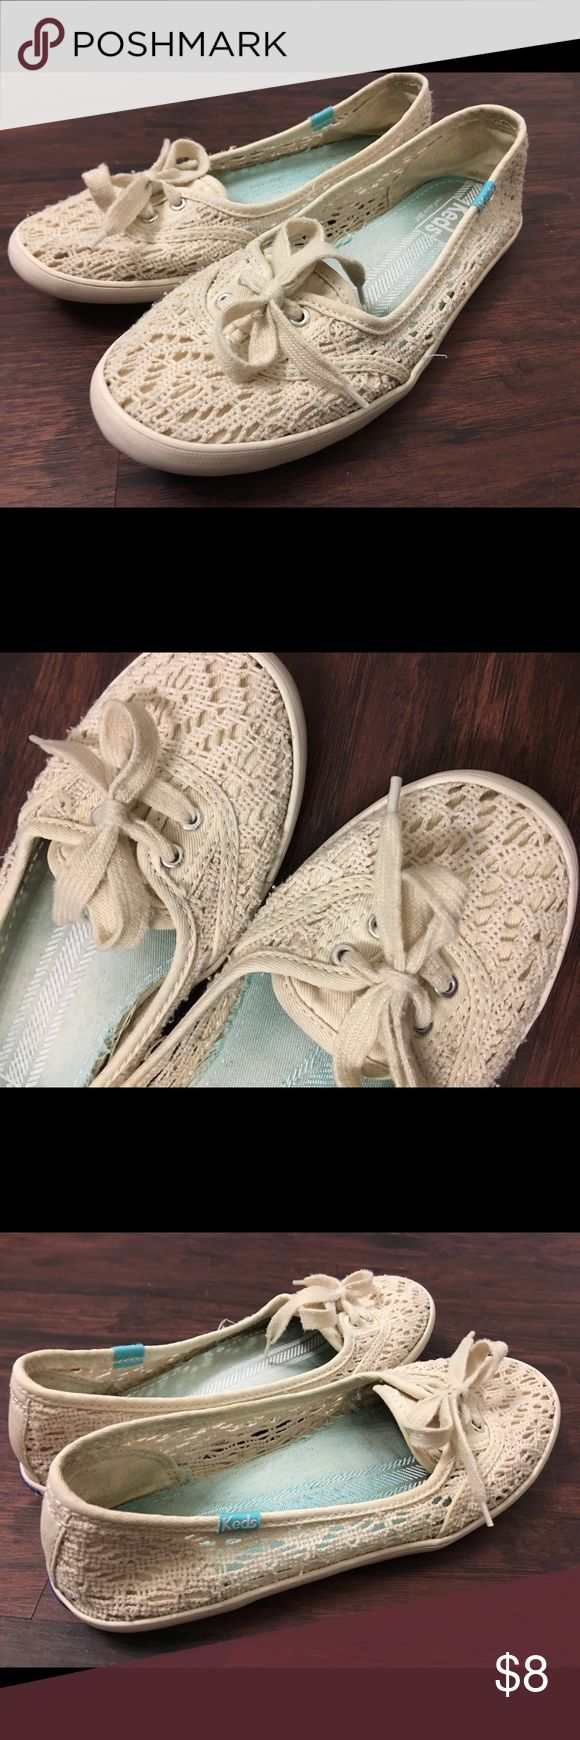 Keds, Women's Teacup Crochet Slip On! Sz 6. Women's Teacup Crochet casual flats from Keds. Decorative lace design. Some normal wear, but still in good condition. Size 6. Make an offer or bundle and save! Keds Shoes Sneakers